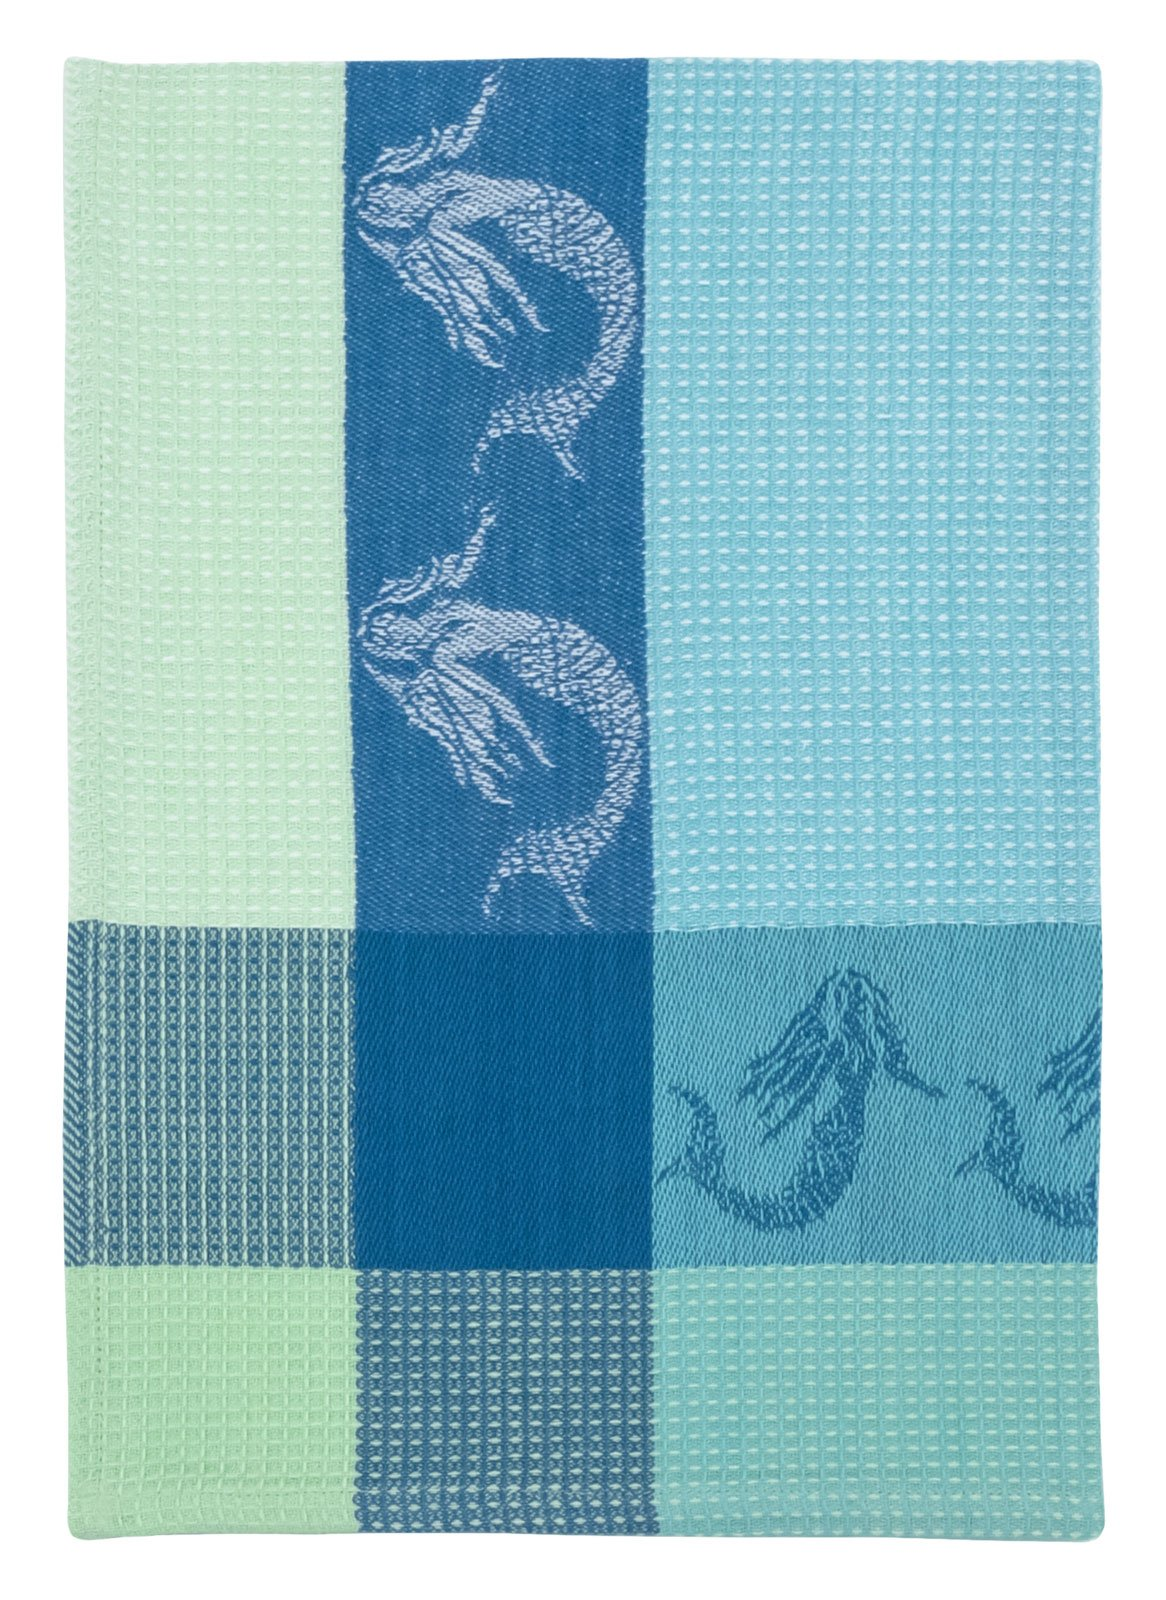 Traders and Company 100% Cotton Blue & White 20''x28'' Dish Towel, Set of 6 - Mermaid Marine by Traders and Company